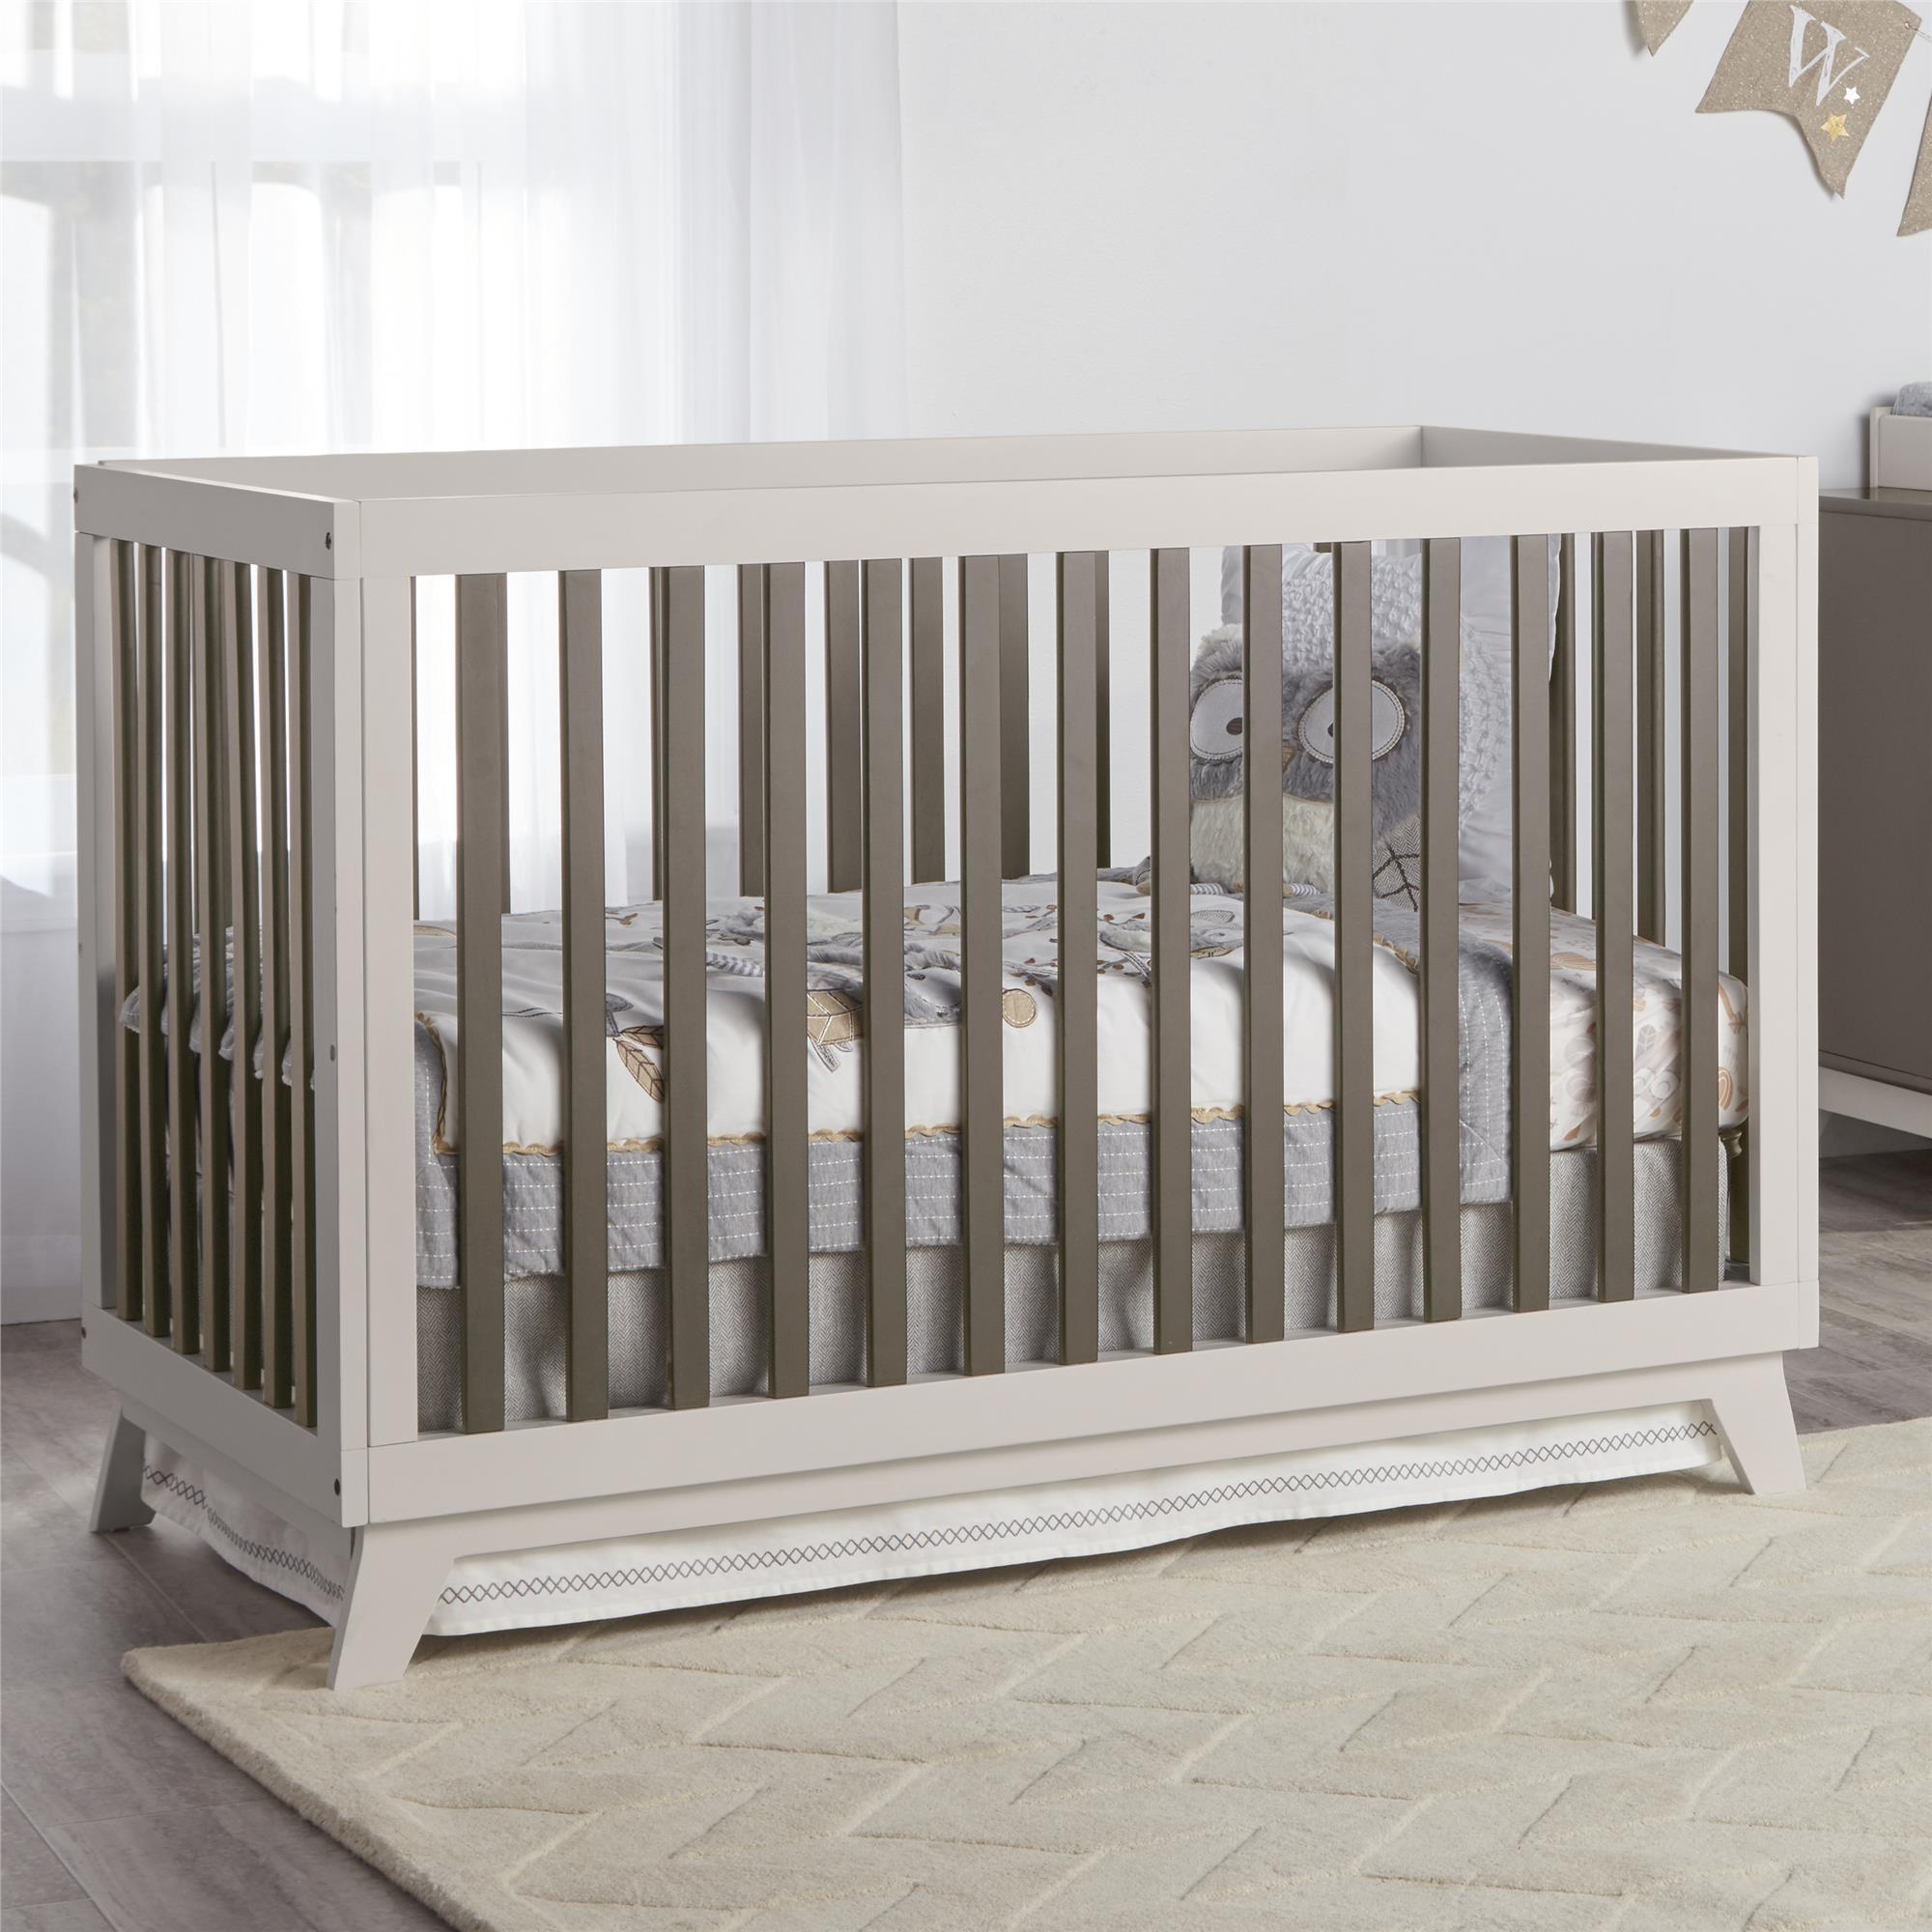 scandinavian sleepi designed toddler check looking mini neutral from full through stokke w baby size see cribs pin also grows for to a crib out bed modern